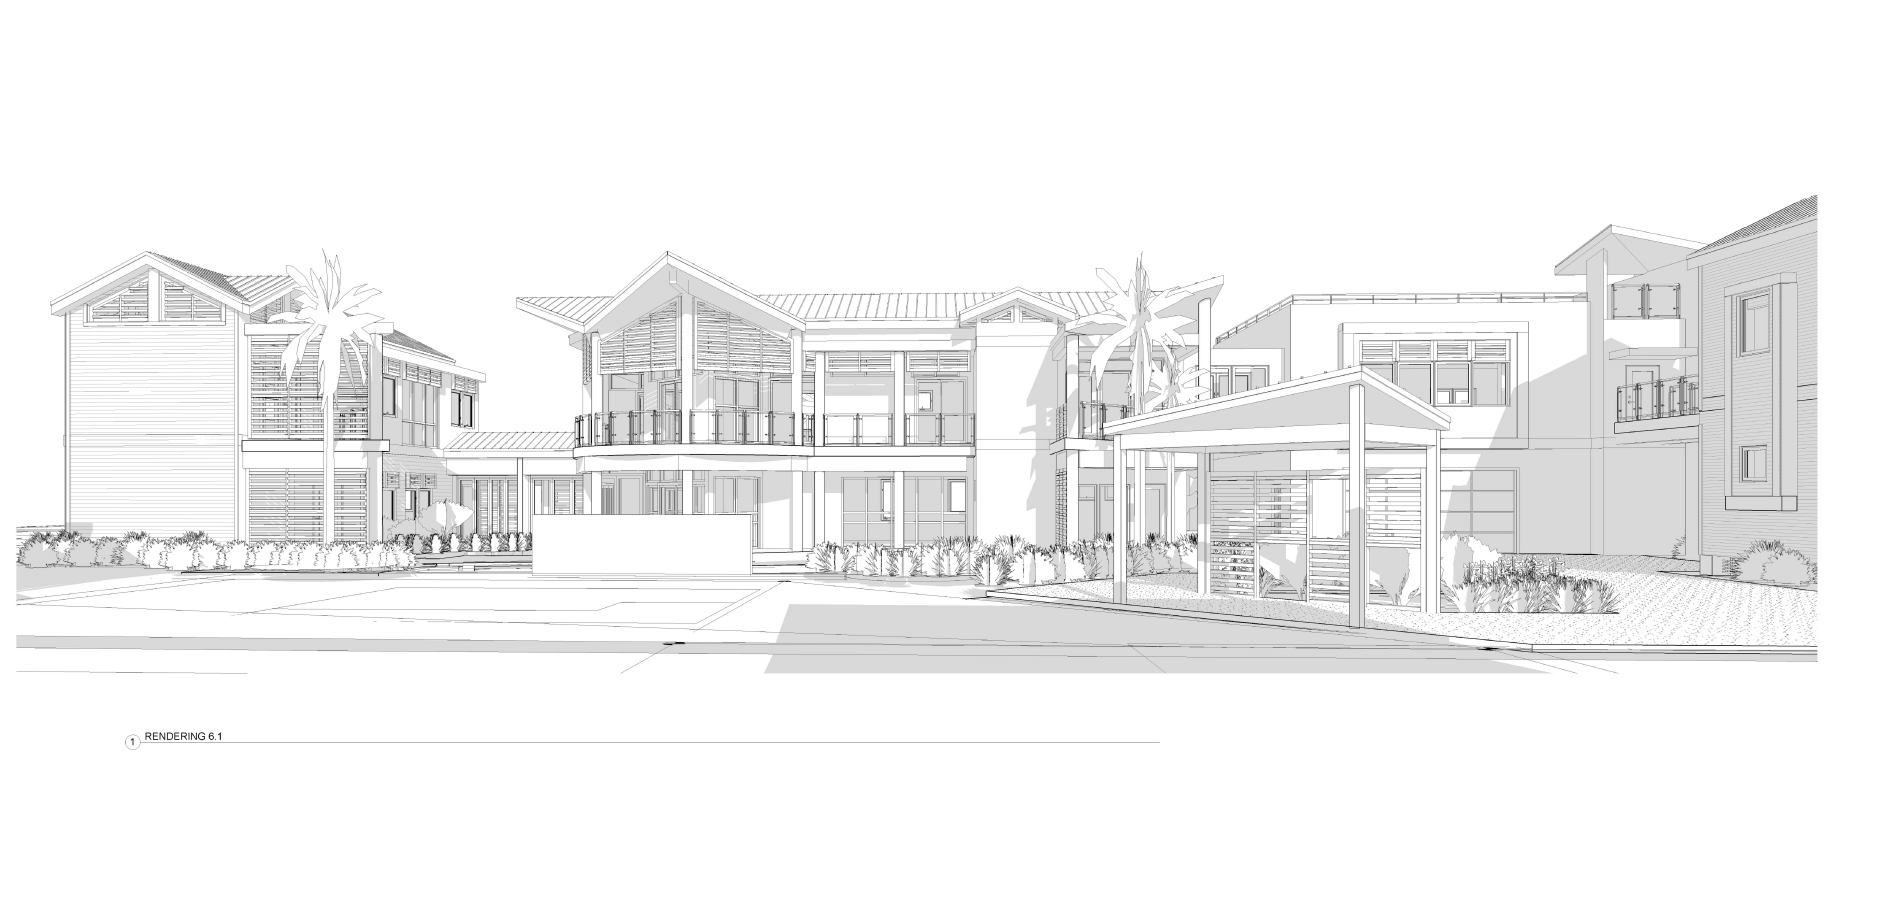 This proposed building at 616 Eaton St. has been approved, despite widespread and vocal opposition. It even helped inspire the formation of a new group, called Keep Old Town Old.